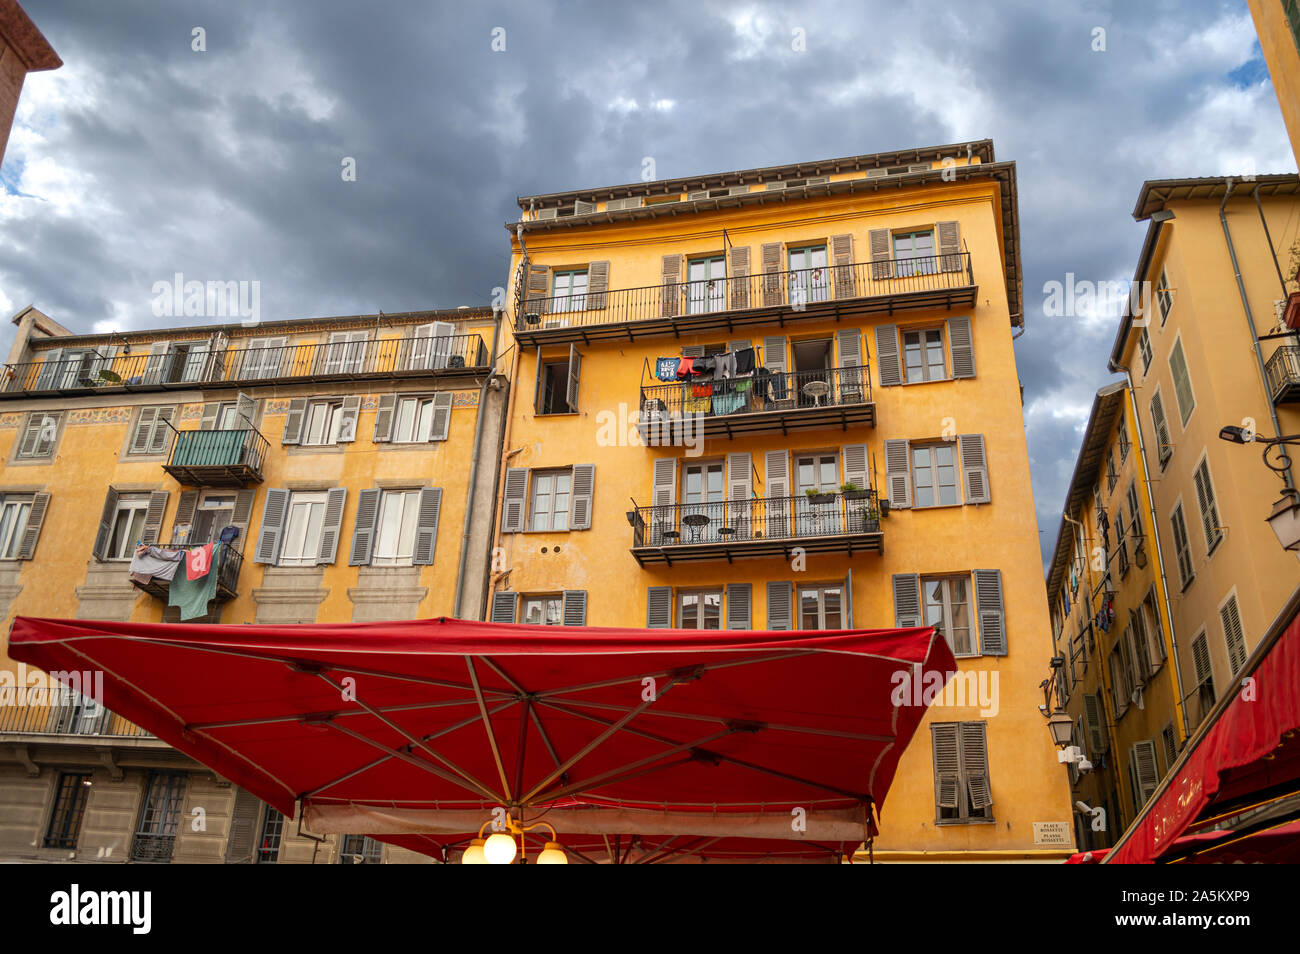 Dark clouds over Place Rossetti in Nice France as laundry hangs on balconies in the historic Old Vieux Nice Stock Photo